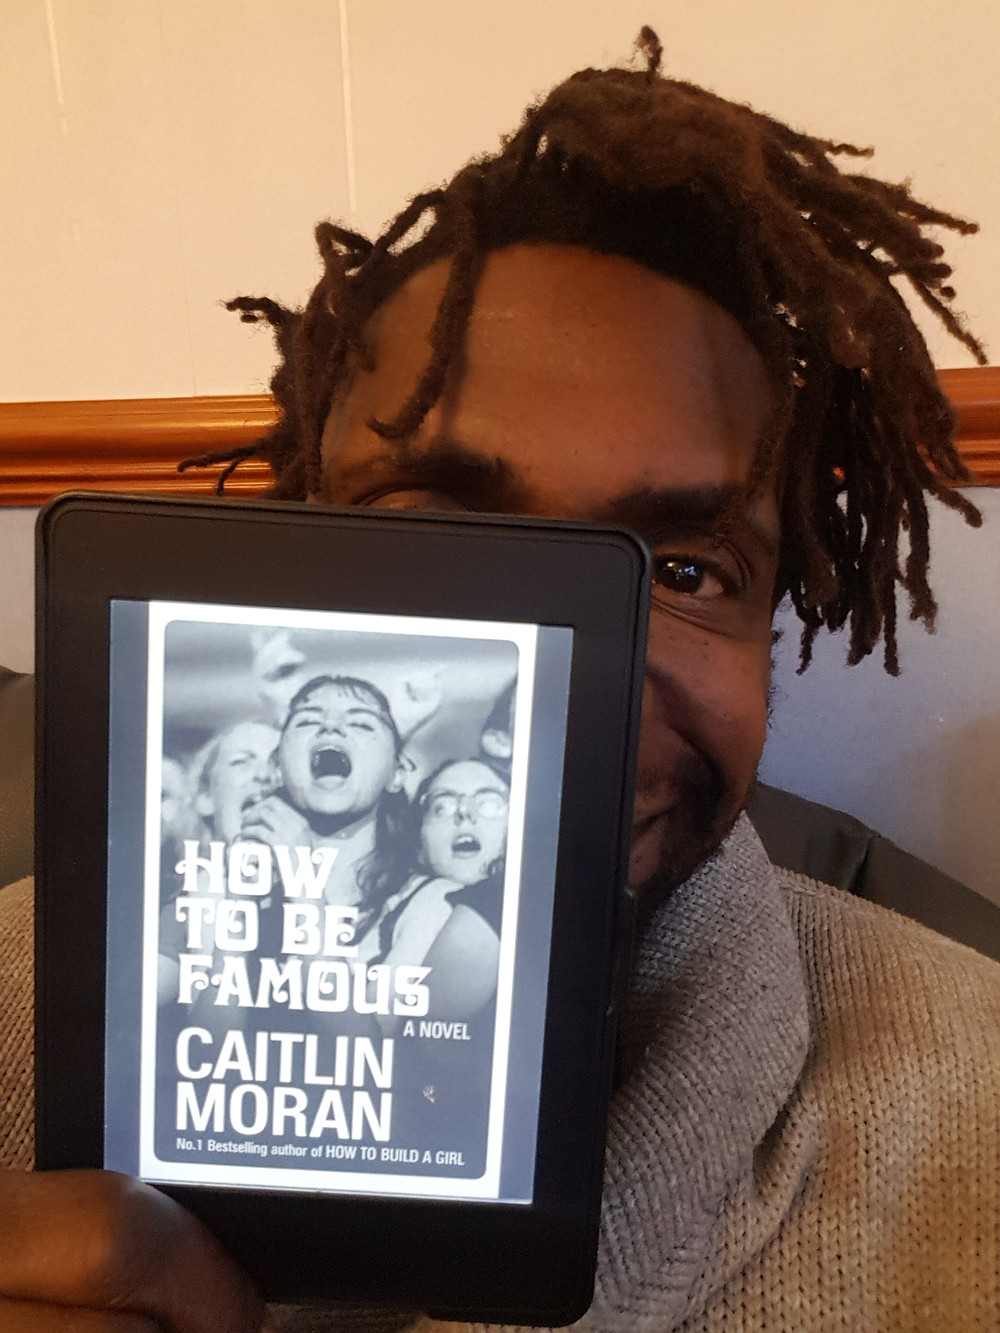 Taj holds a copy of Caitlin Moran's How to be Famous